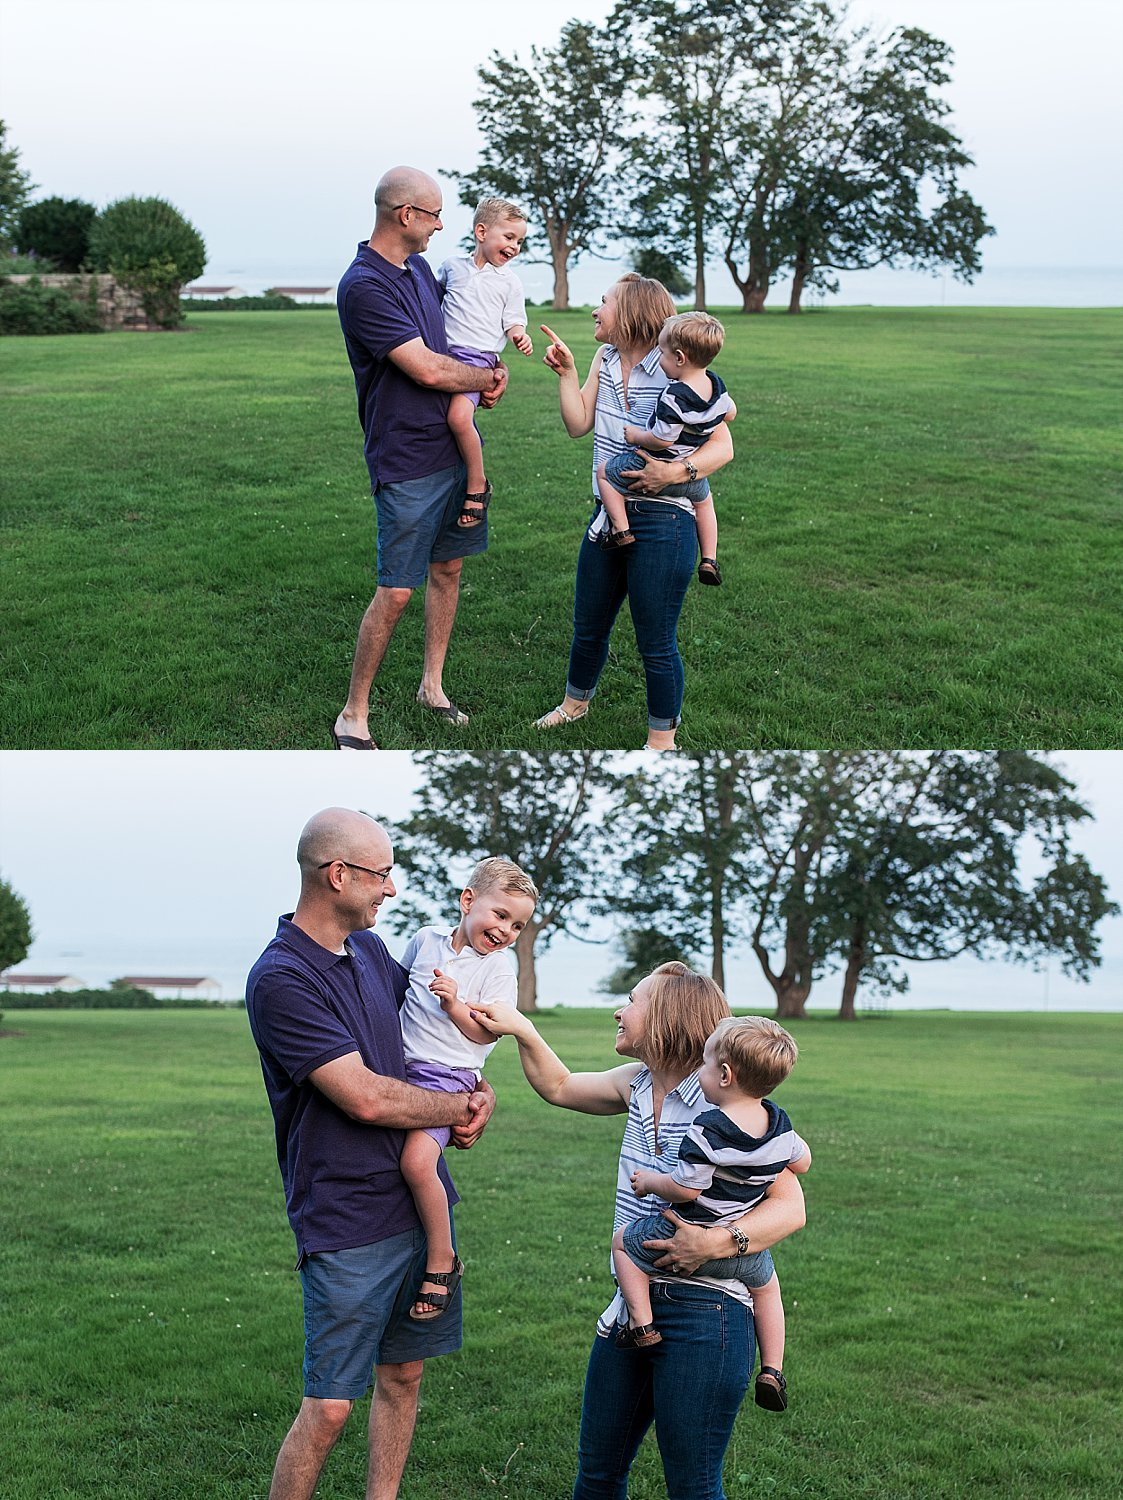 Family photography in New London County